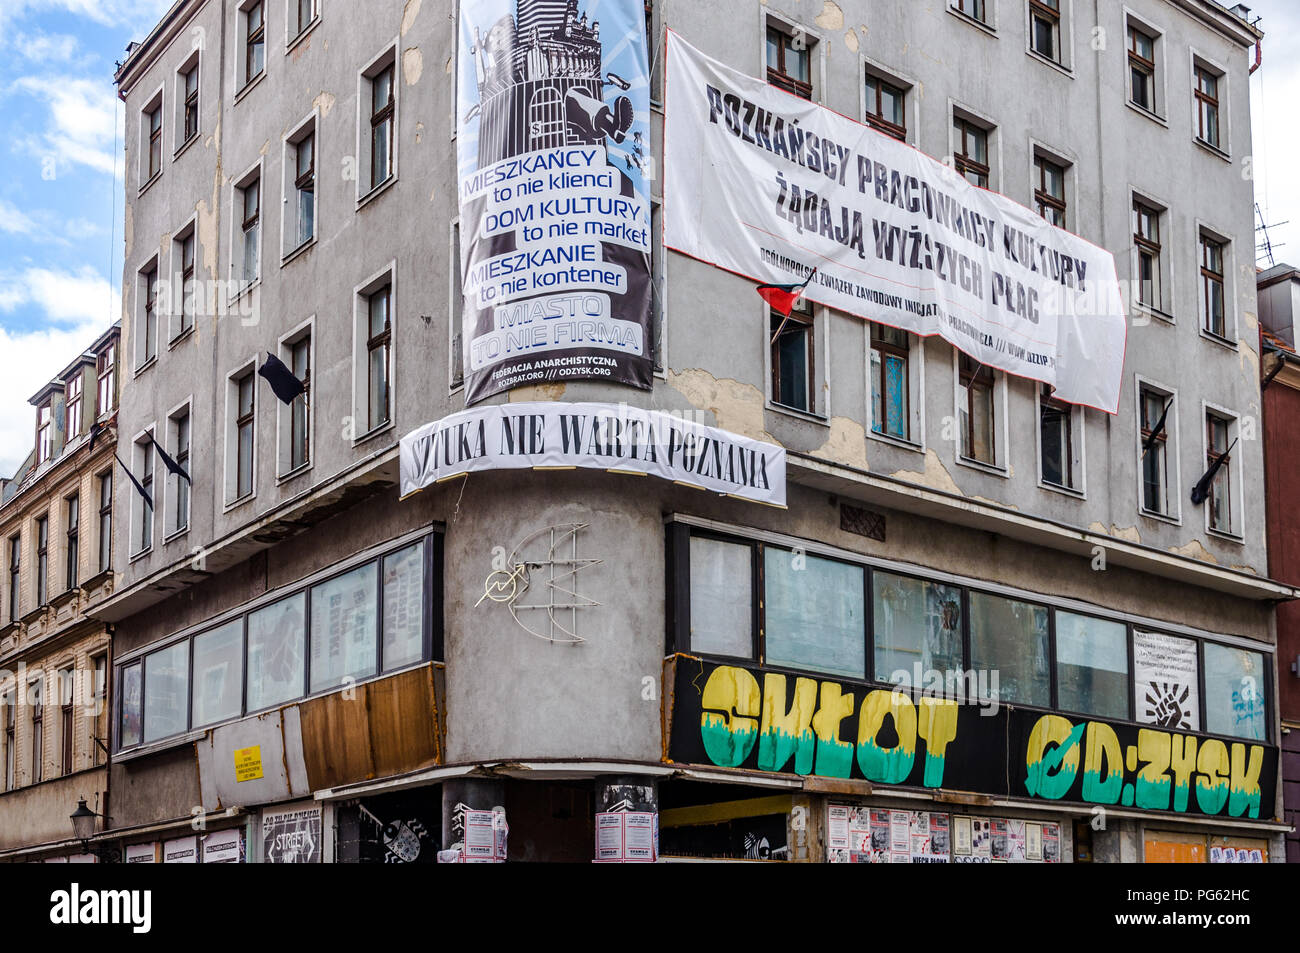 An anti capitalist squat in the centre of Poznań (Poznan), Poland - Stock Image